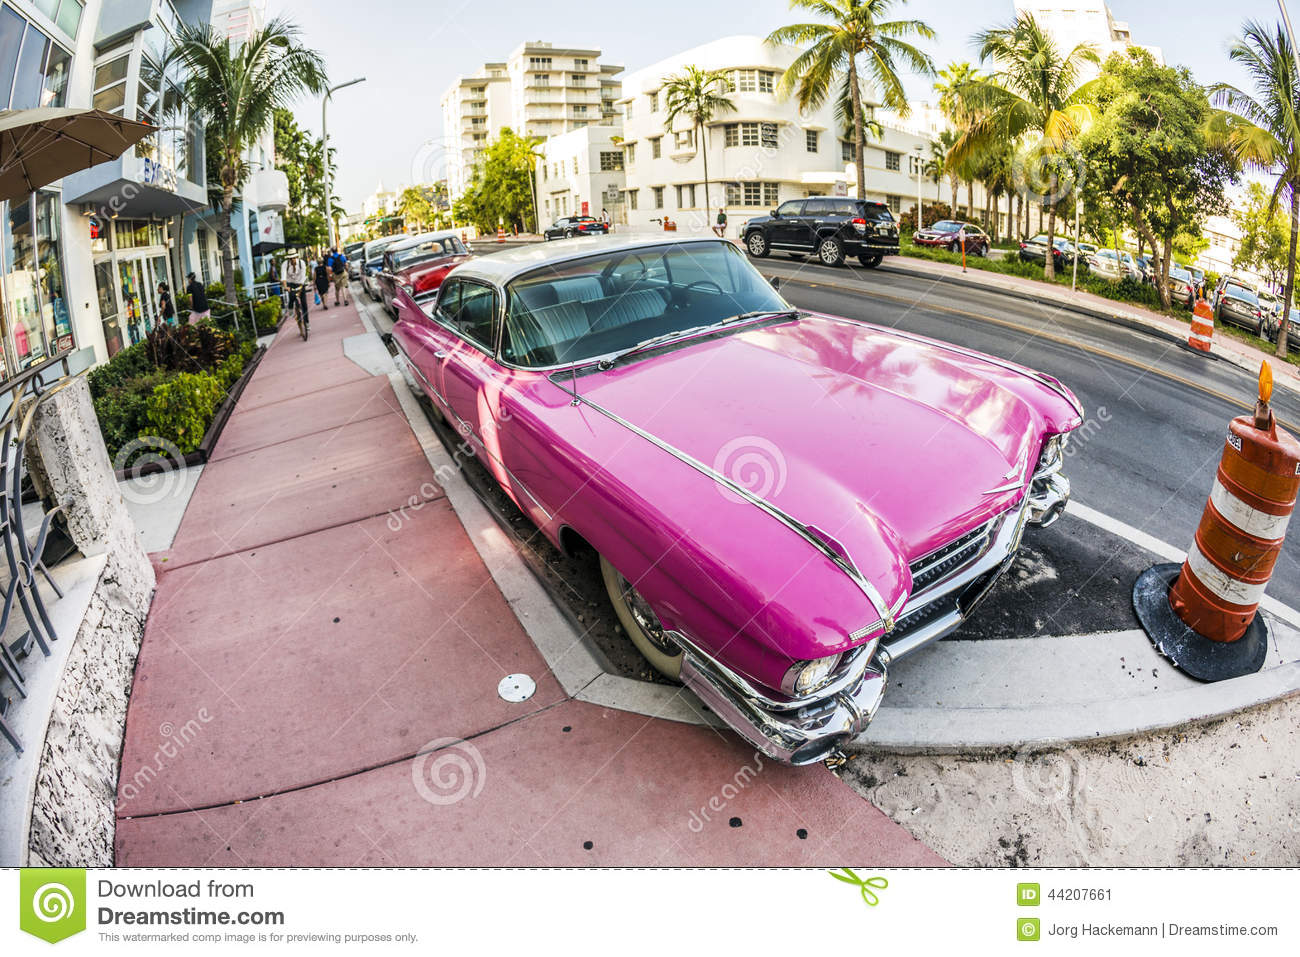 oceanfront miami easy hotels cadillac pin courtyard beach grass